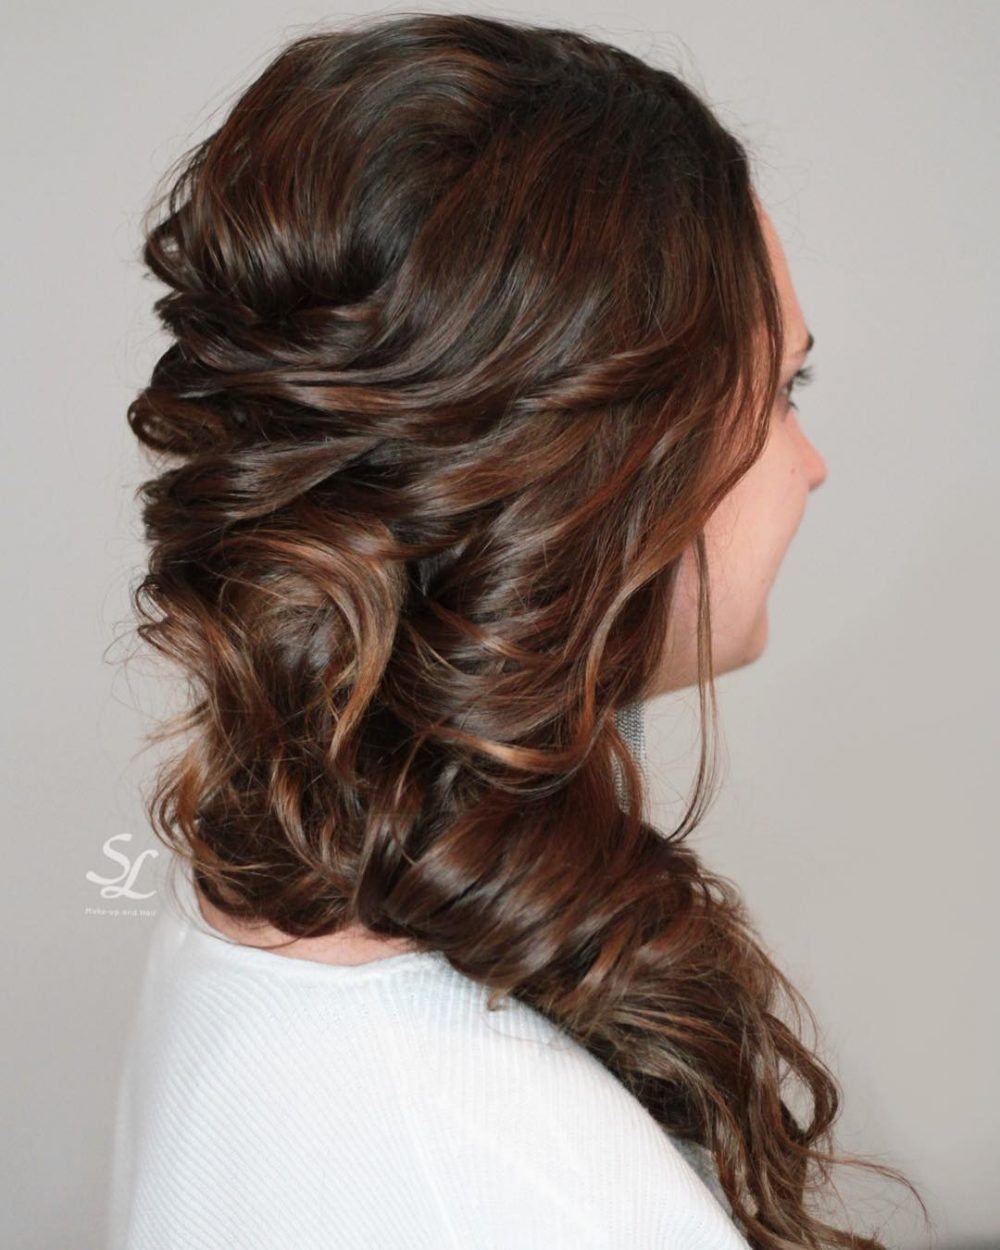 Voluminous Side 'Do hairstyle